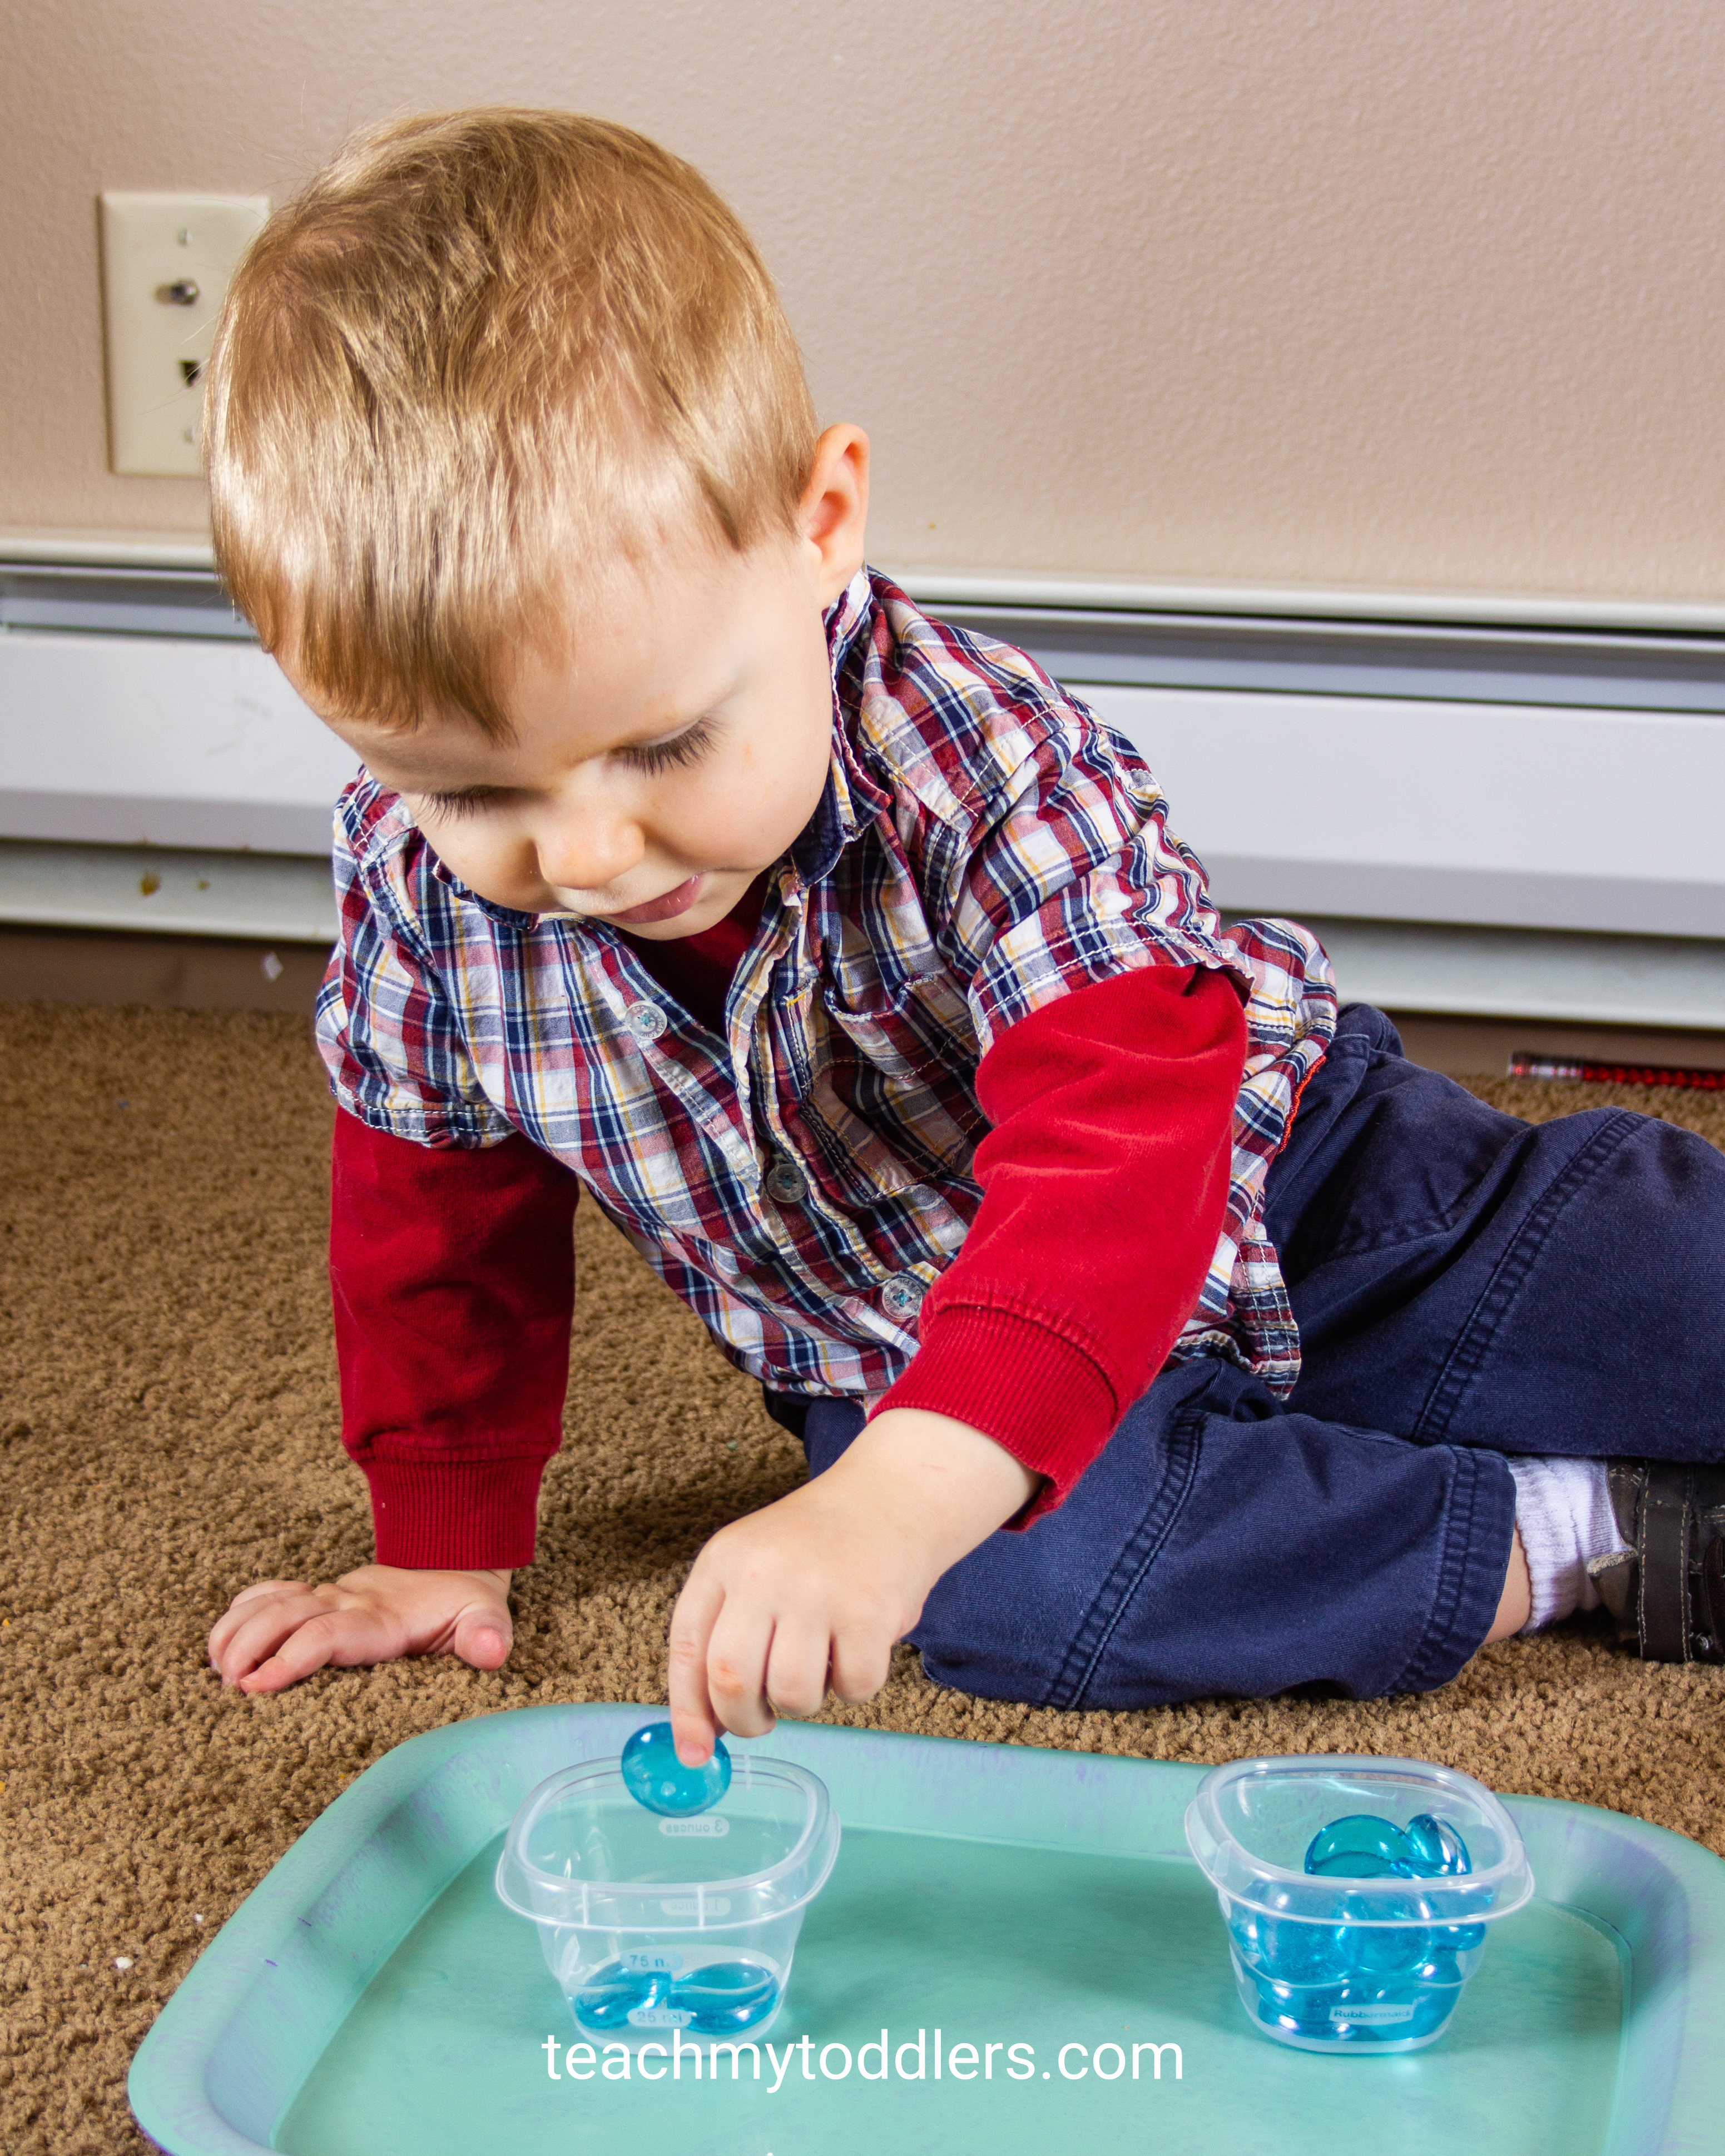 Use these fun winter activities to teach toddlers about winter